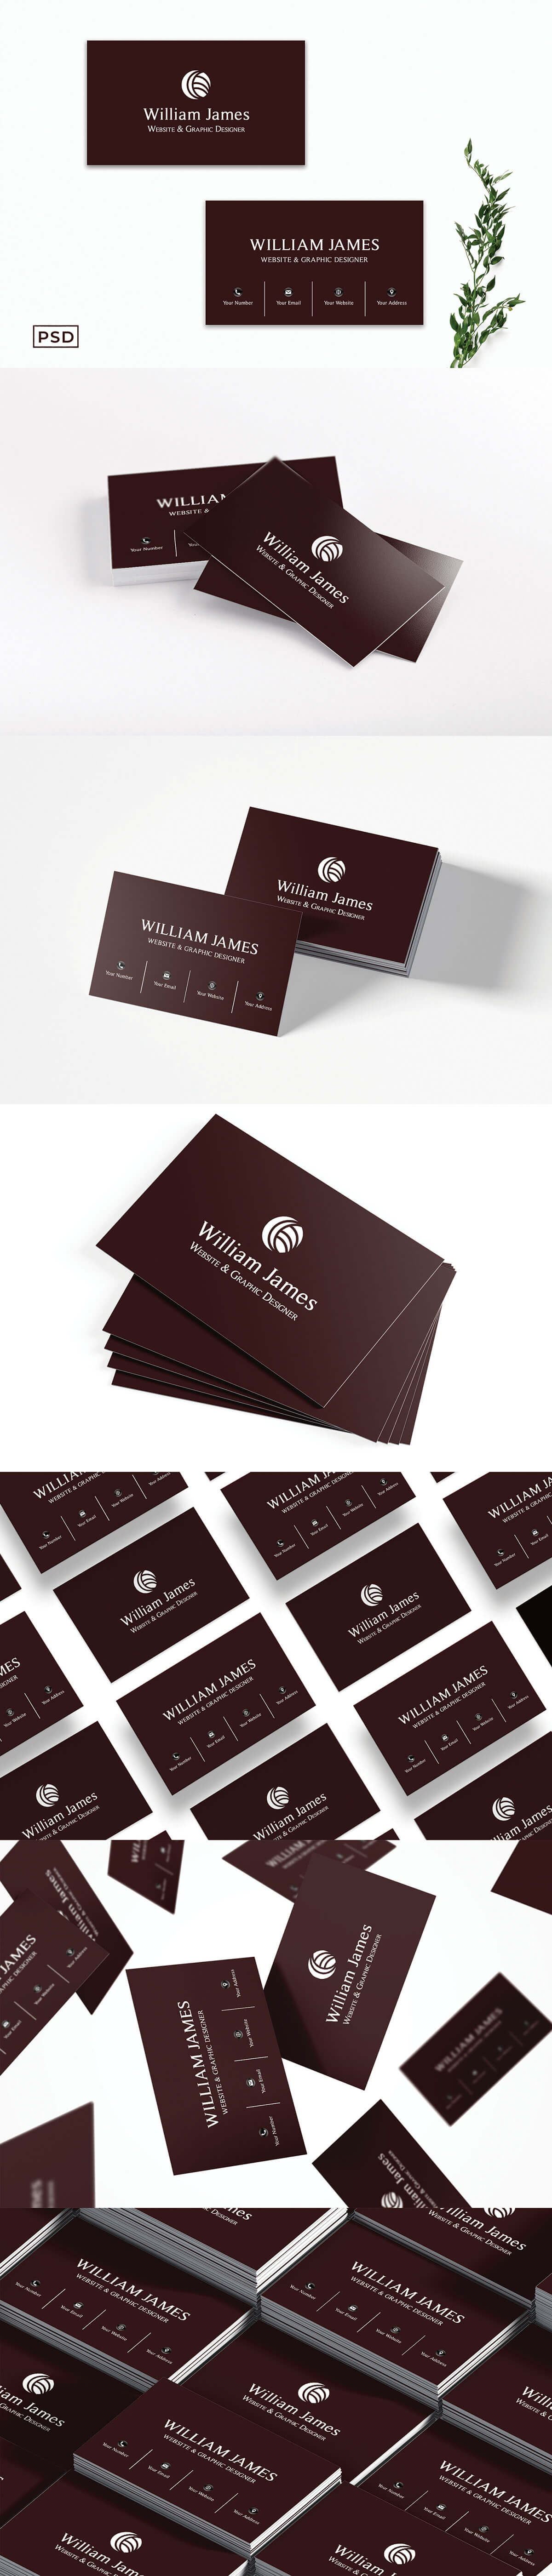 Free Red Minimal Business Card Template V2